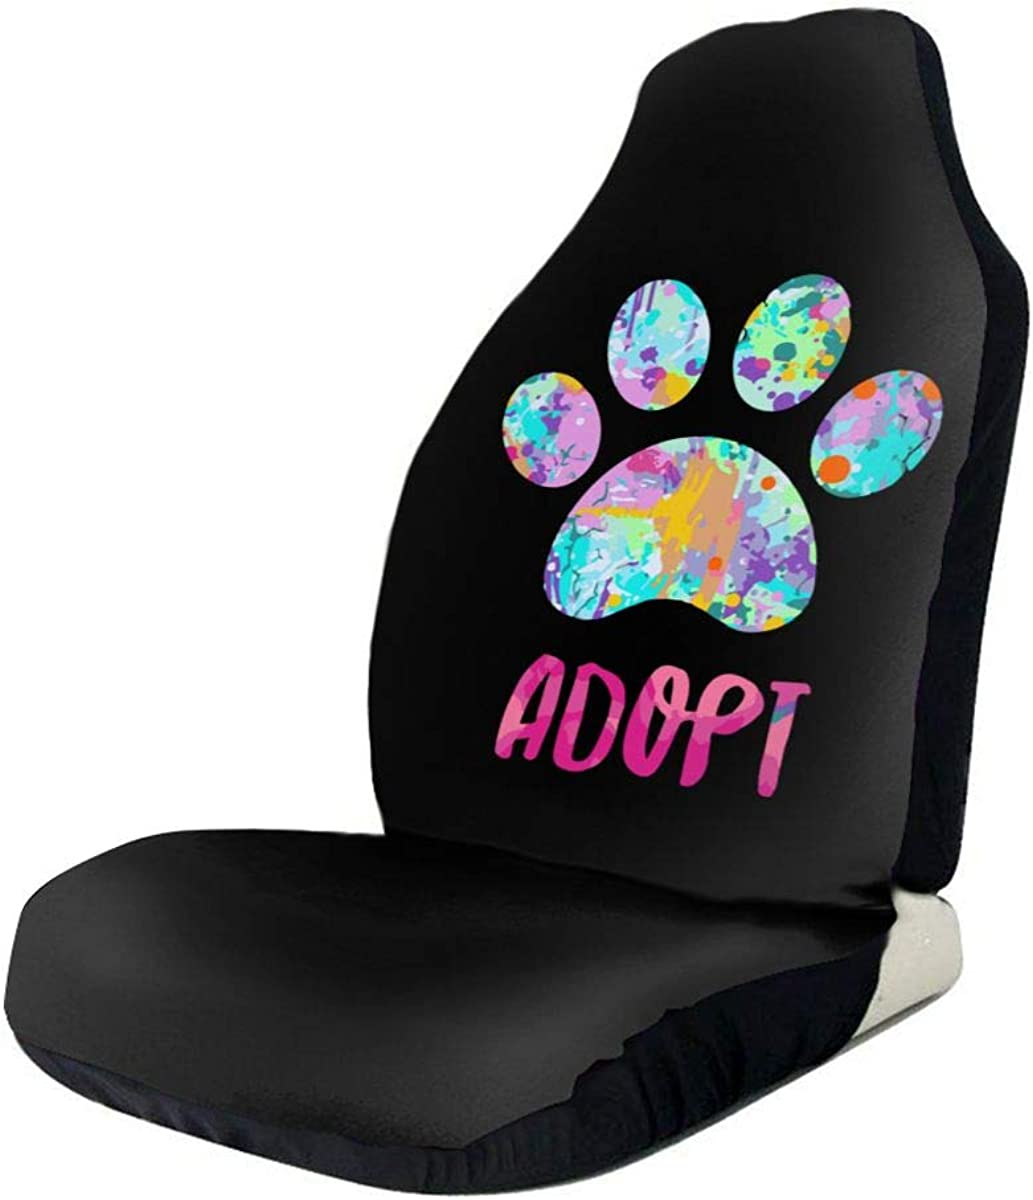 Recommendation Dog Paw discount Print Adopt Colorful Fashion Pattern Seat Auto Fu Covers